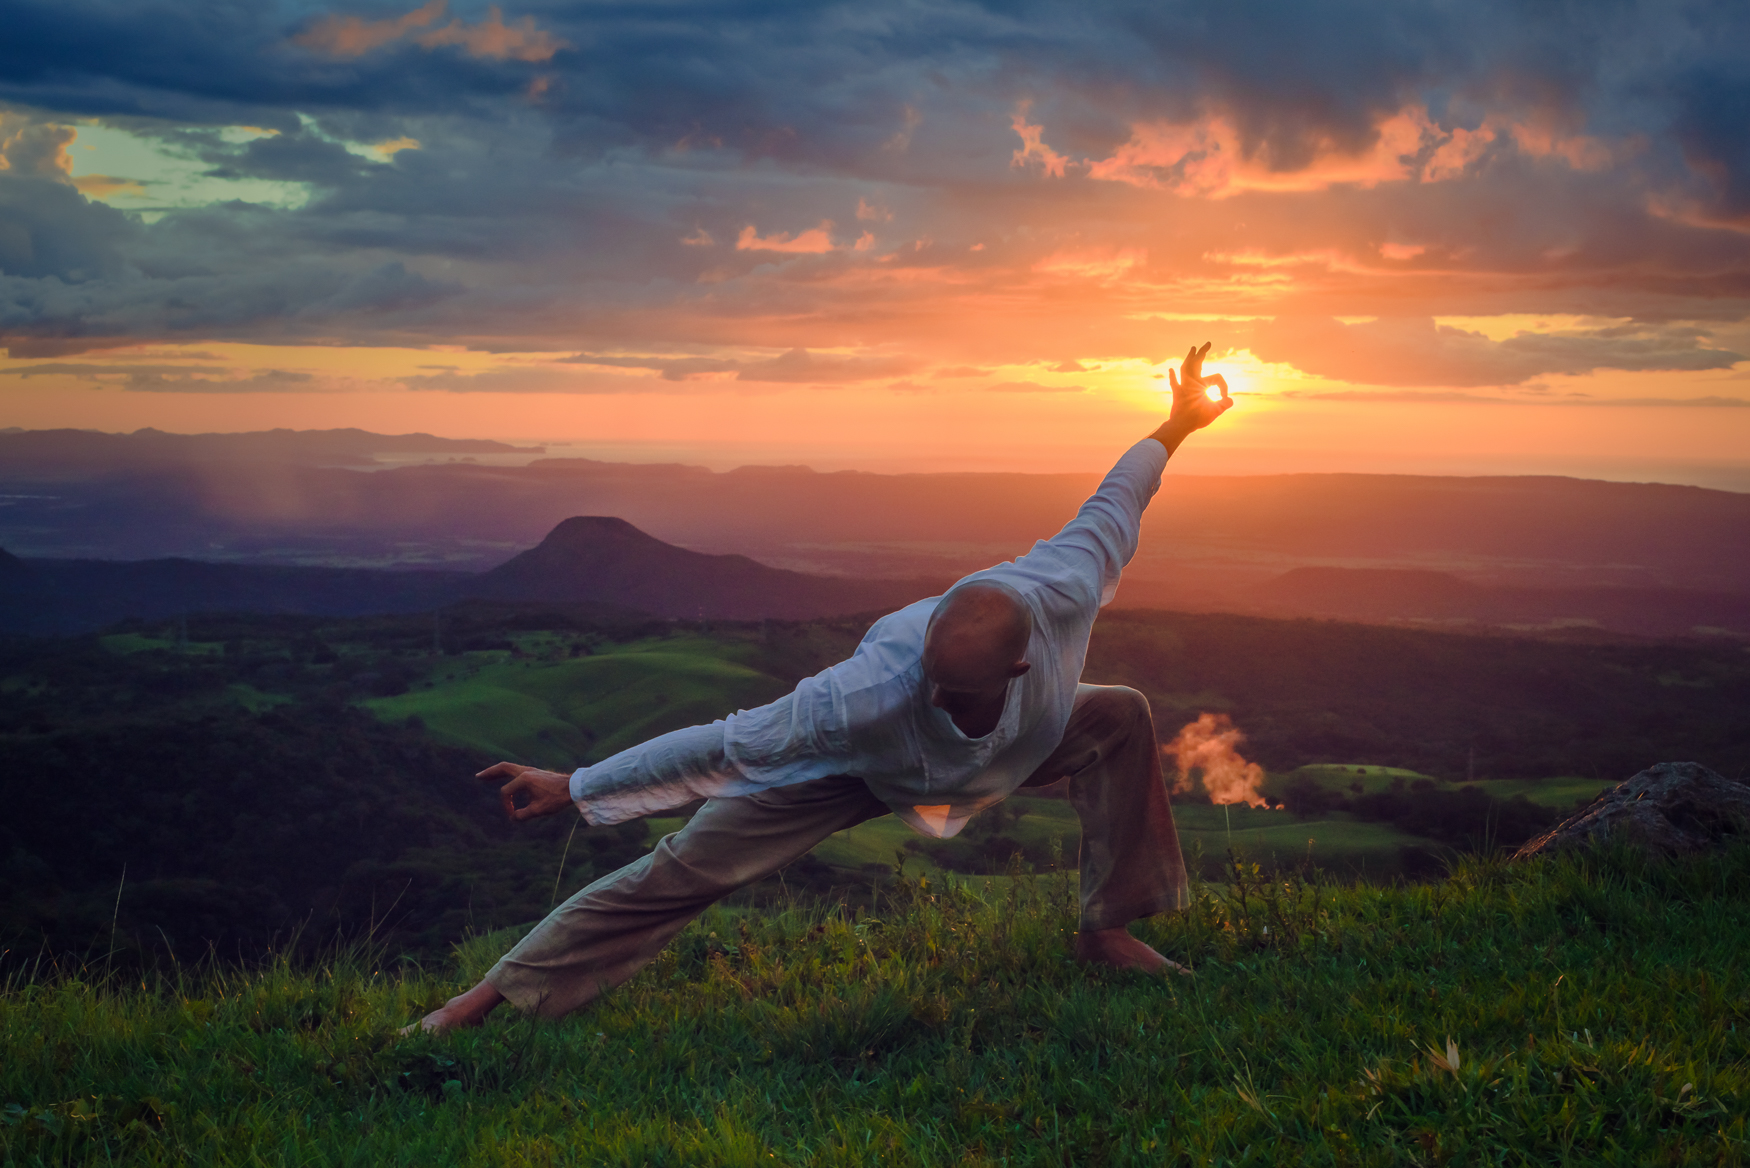 Yoga-Inspired-Practices-Photography-Costa-Rica-6.jpg